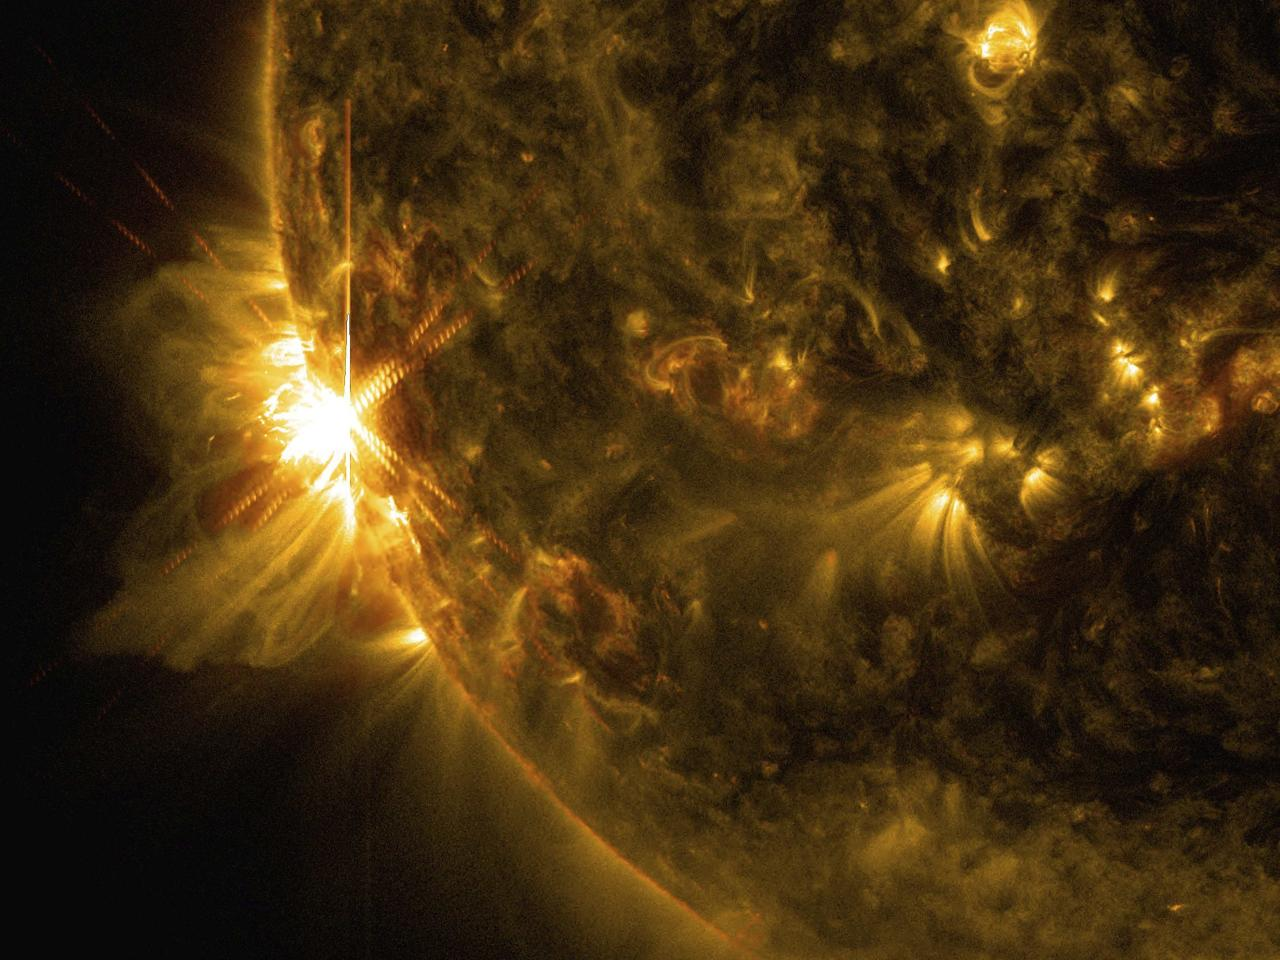 A solar flare bursts off the left limb of the sun in this image captured by NASA's Solar Dynamics Observatory at 07:41 EST (11:41 GMT) June 10, 2014, This is classified as an X2.2 flare, shown in a blend of two wavelengths of light: 171 and 131 angstroms, colorized in gold and red, respectively, according to a NASA news release. REUTERS/NASA/SDO/Goddard/Wiessinger/Handout via Reuters (OUTER SPACE - Tags: SCIENCE TECHNOLOGY) ATTENTION EDITORS - THIS PICTURE WAS PROVIDED BY A THIRD PARTY. REUTERS IS UNABLE TO INDEPENDENTLY VERIFY THE AUTHENTICITY, CONTENT, LOCATION OR DATE OF THIS IMAGE. FOR EDITORIAL USE ONLY. NOT FOR SALE FOR MARKETING OR ADVERTISING CAMPAIGNS. THIS PICTURE IS DISTRIBUTED EXACTLY AS RECEIVED BY REUTERS, AS A SERVICE TO CLIENTS